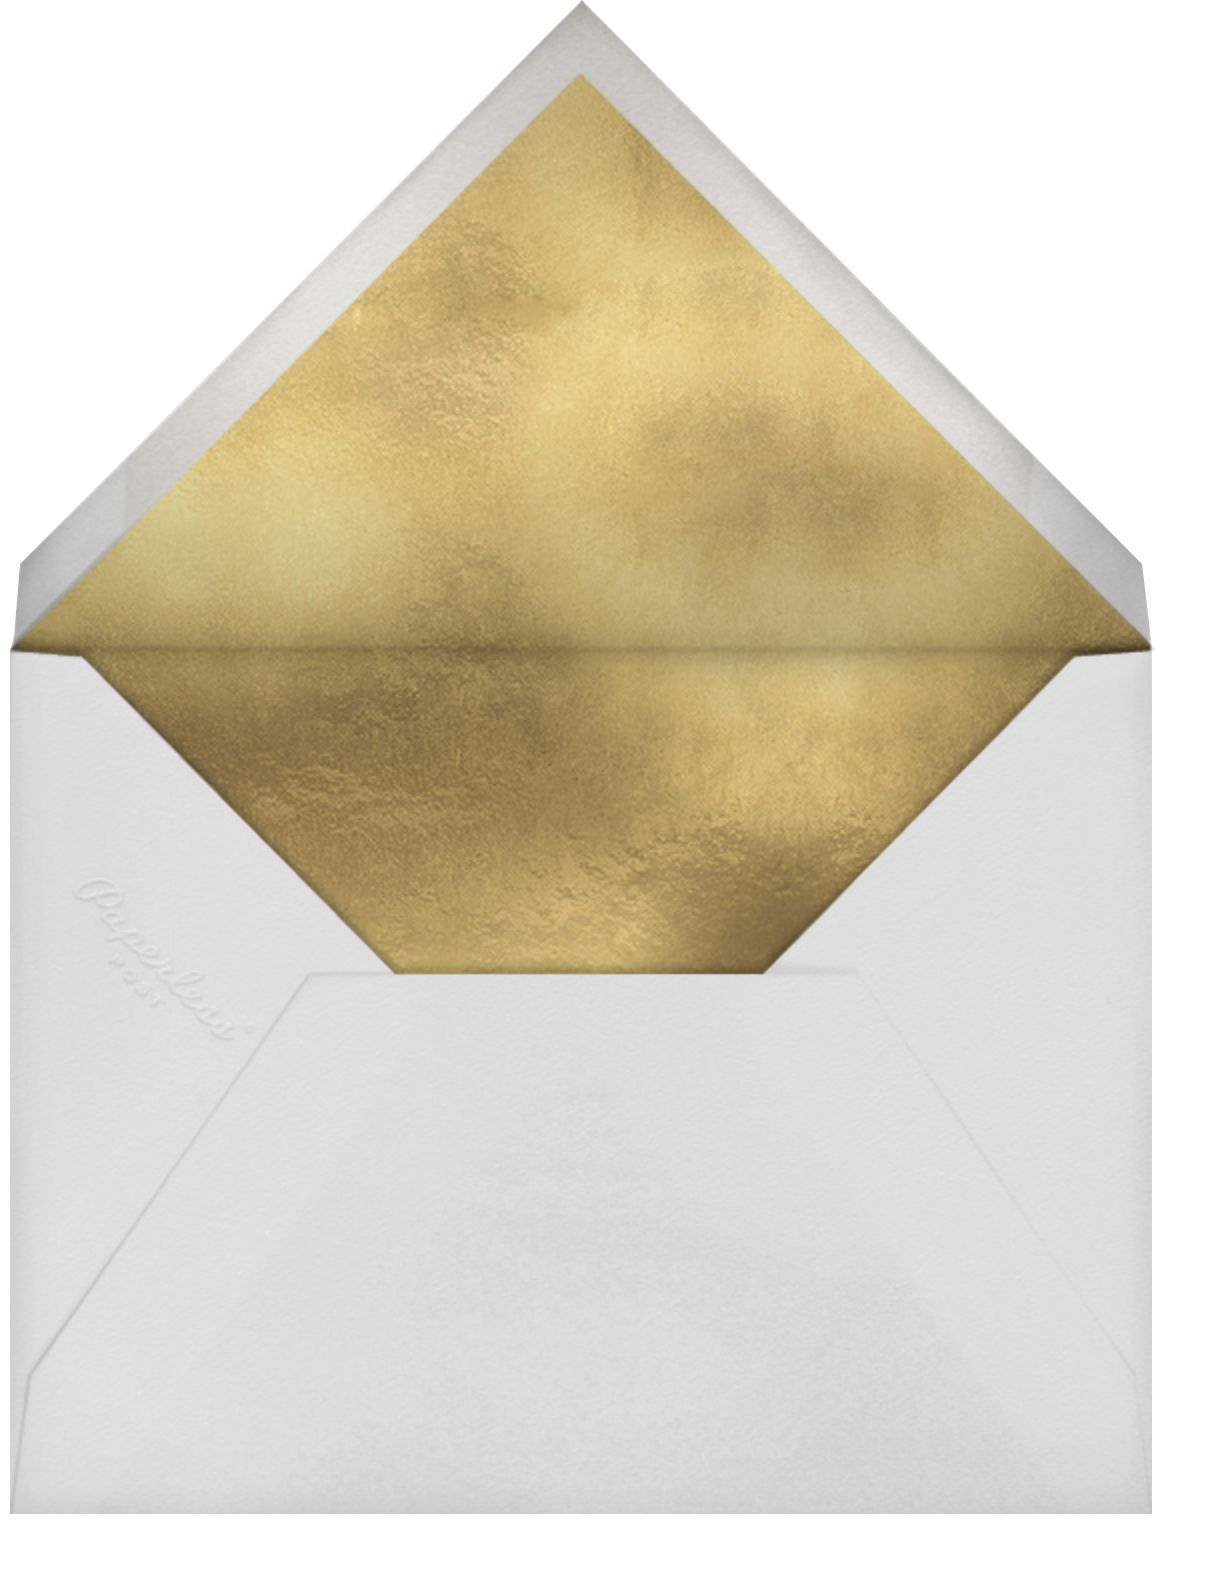 New Year Girl - Red - Rifle Paper Co. - New Year - envelope back